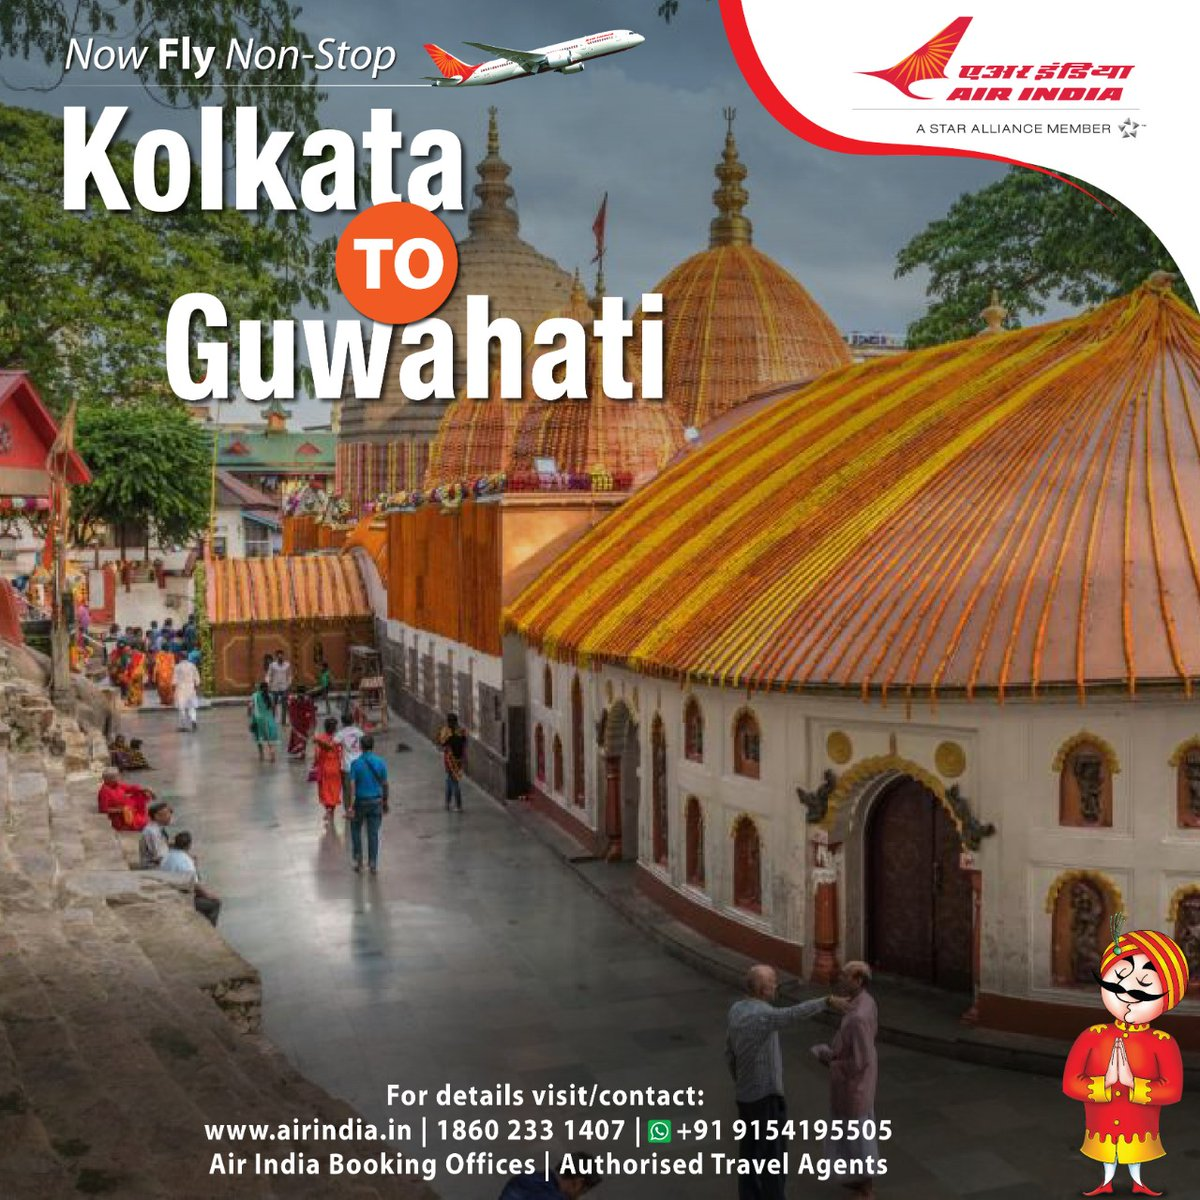 #FlyAI : Fly non-stop from Kolkata to Guwahati.  To book seats, please visit our website  or call us on 18602331407.